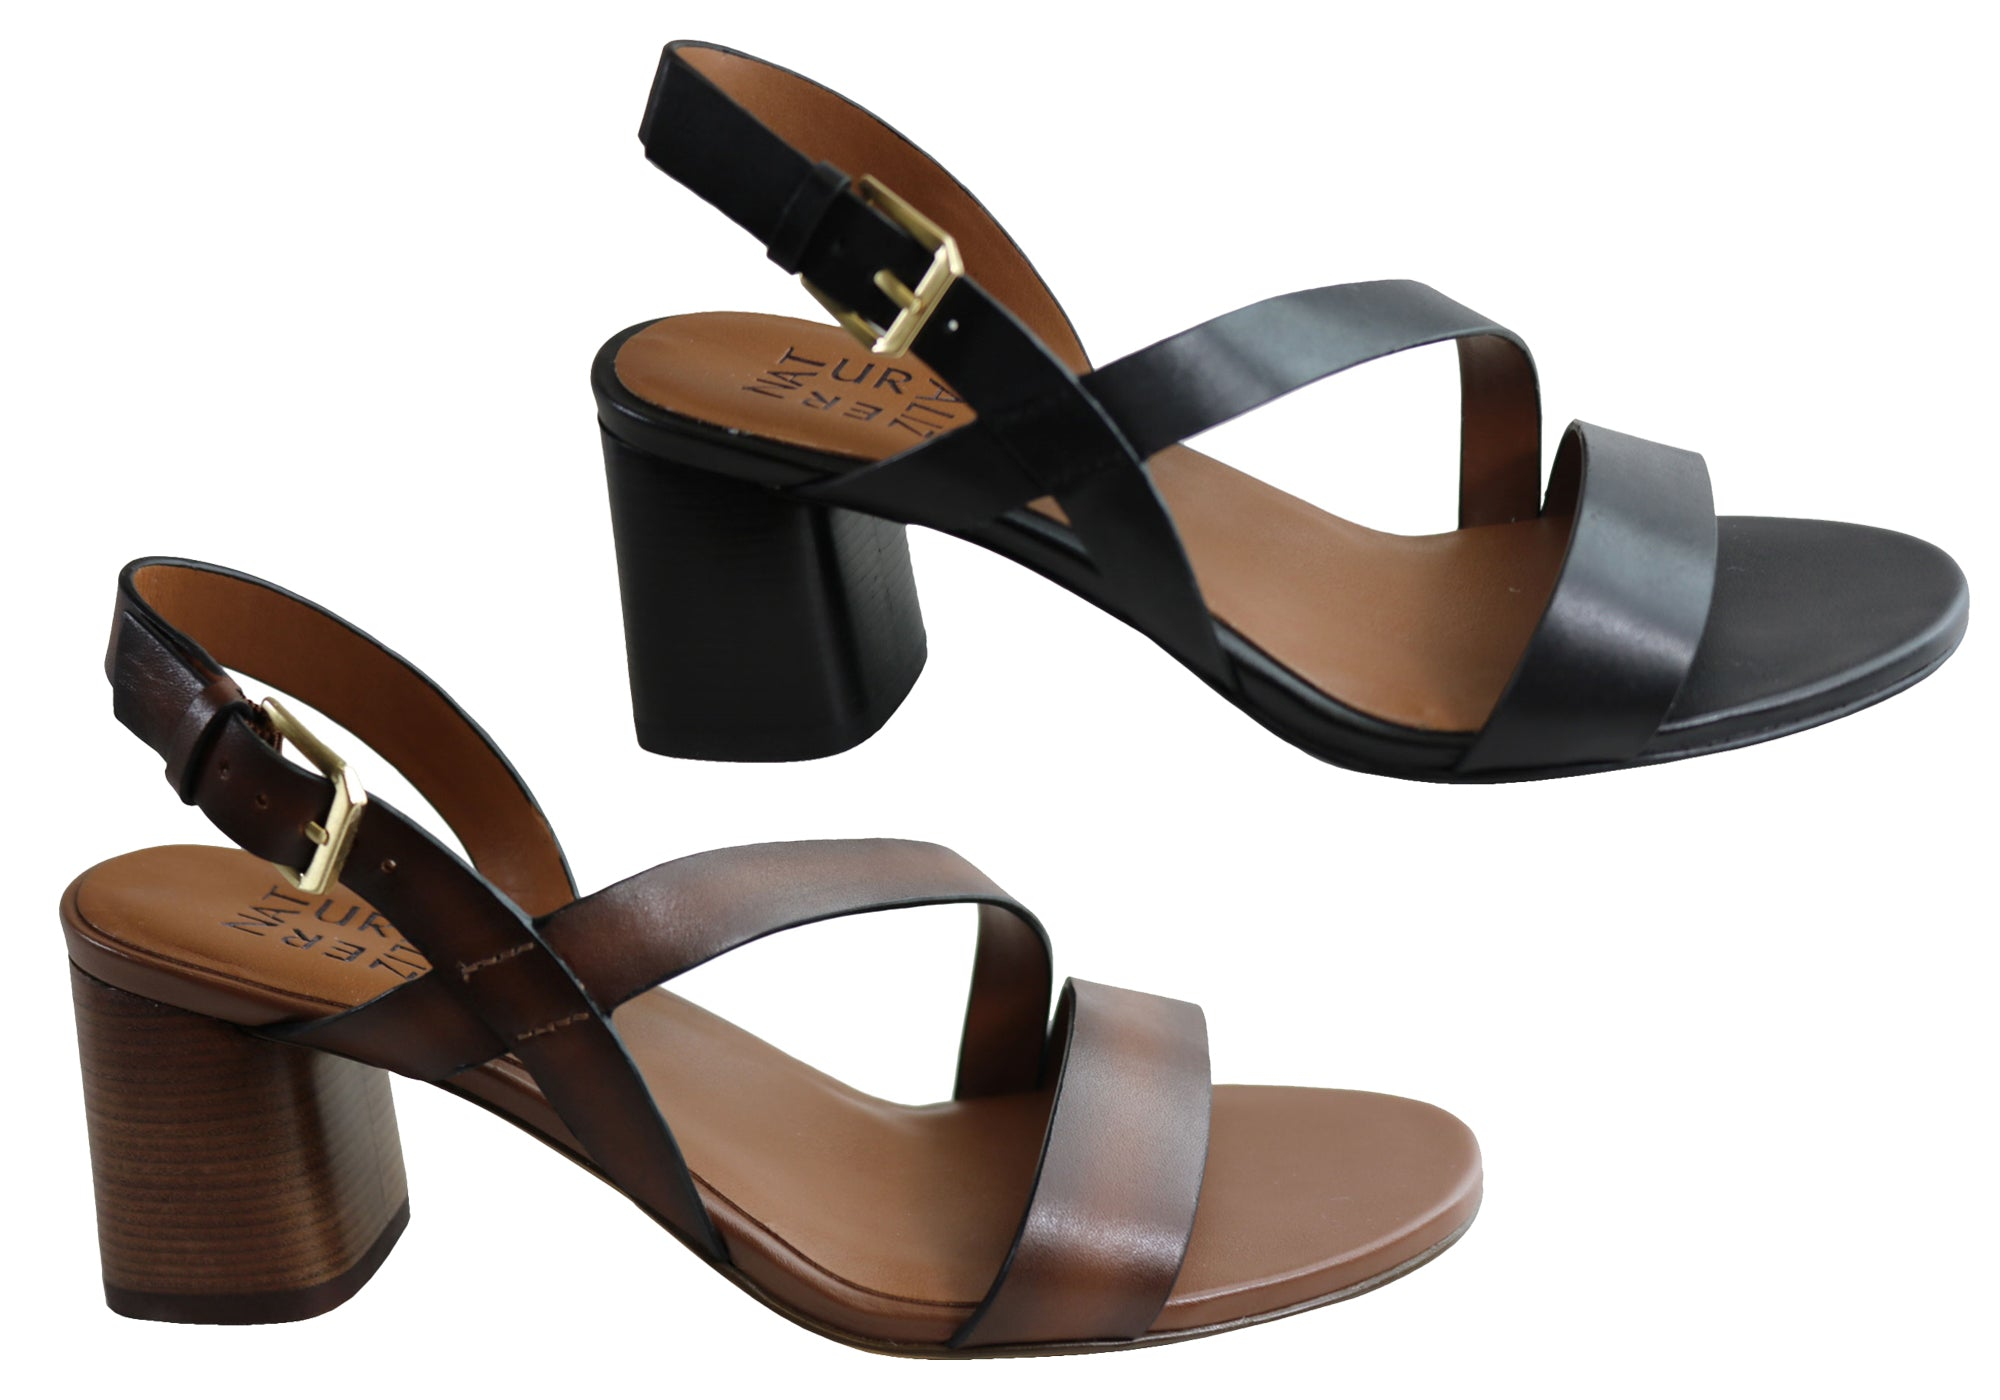 Details about Brand New Naturalizer Arianna Womens Comfortable Leather Mid Heel Sandals